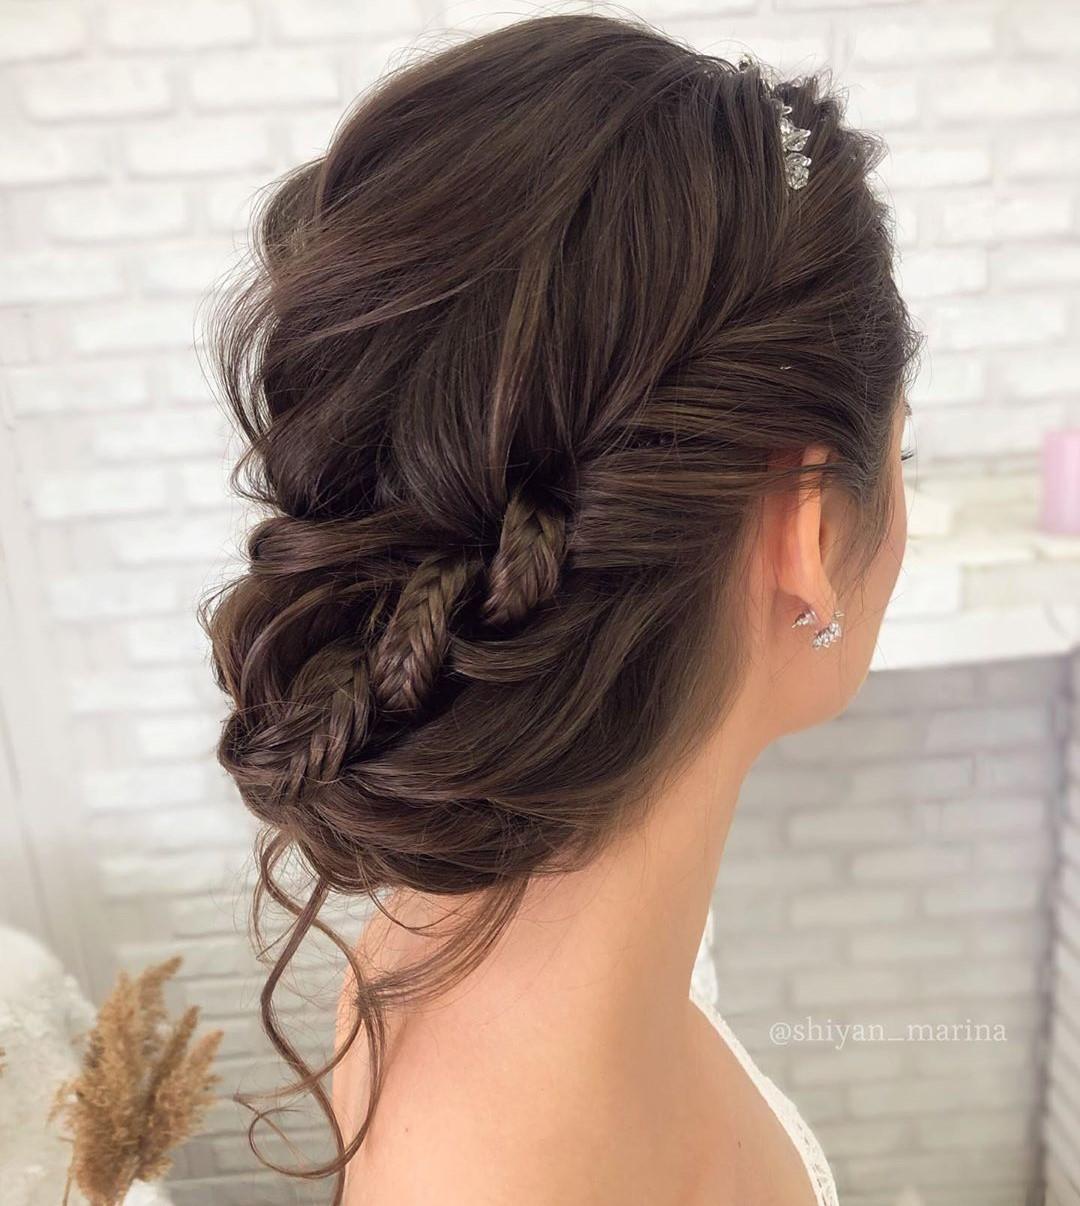 Messy Loose Updo with a Braid